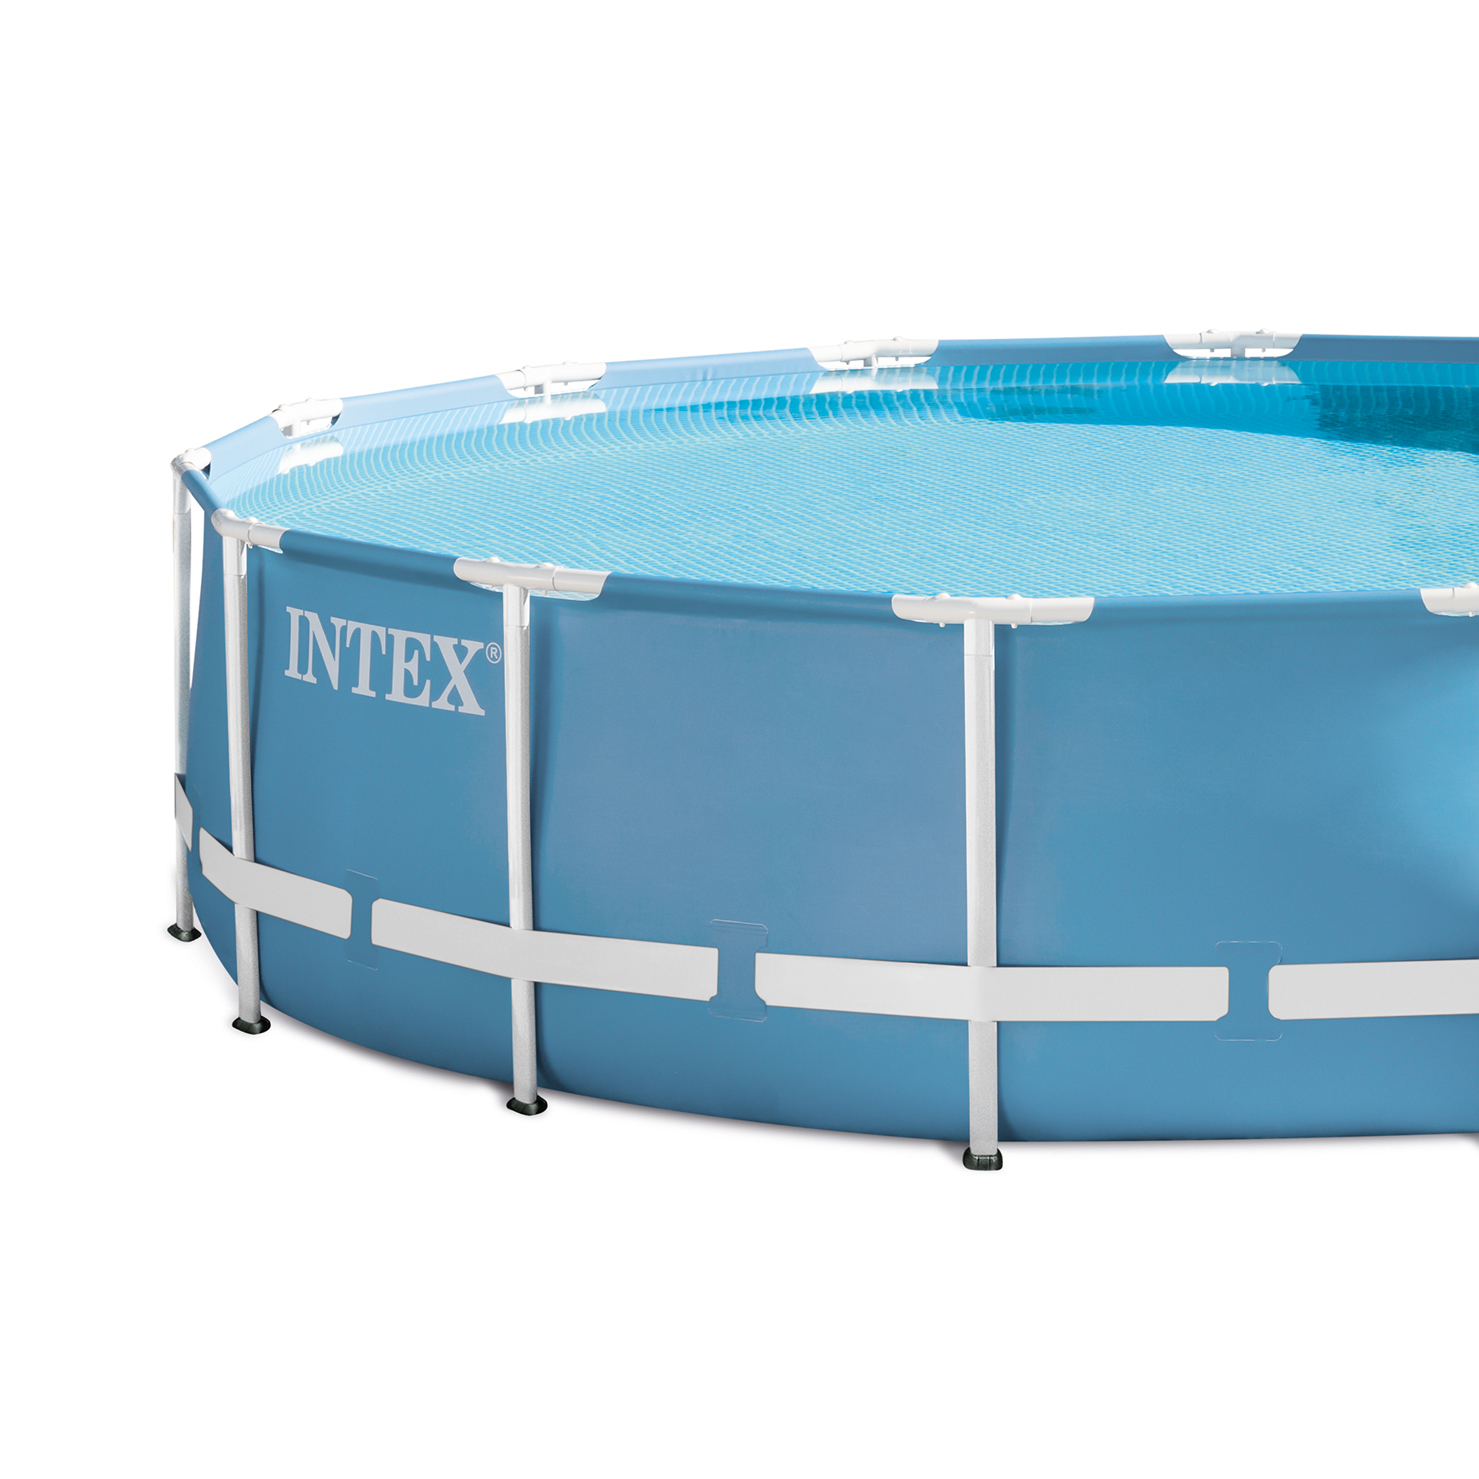 Intex 15 39 x 33 prism frame above ground swimming pool set for Above ground pool set